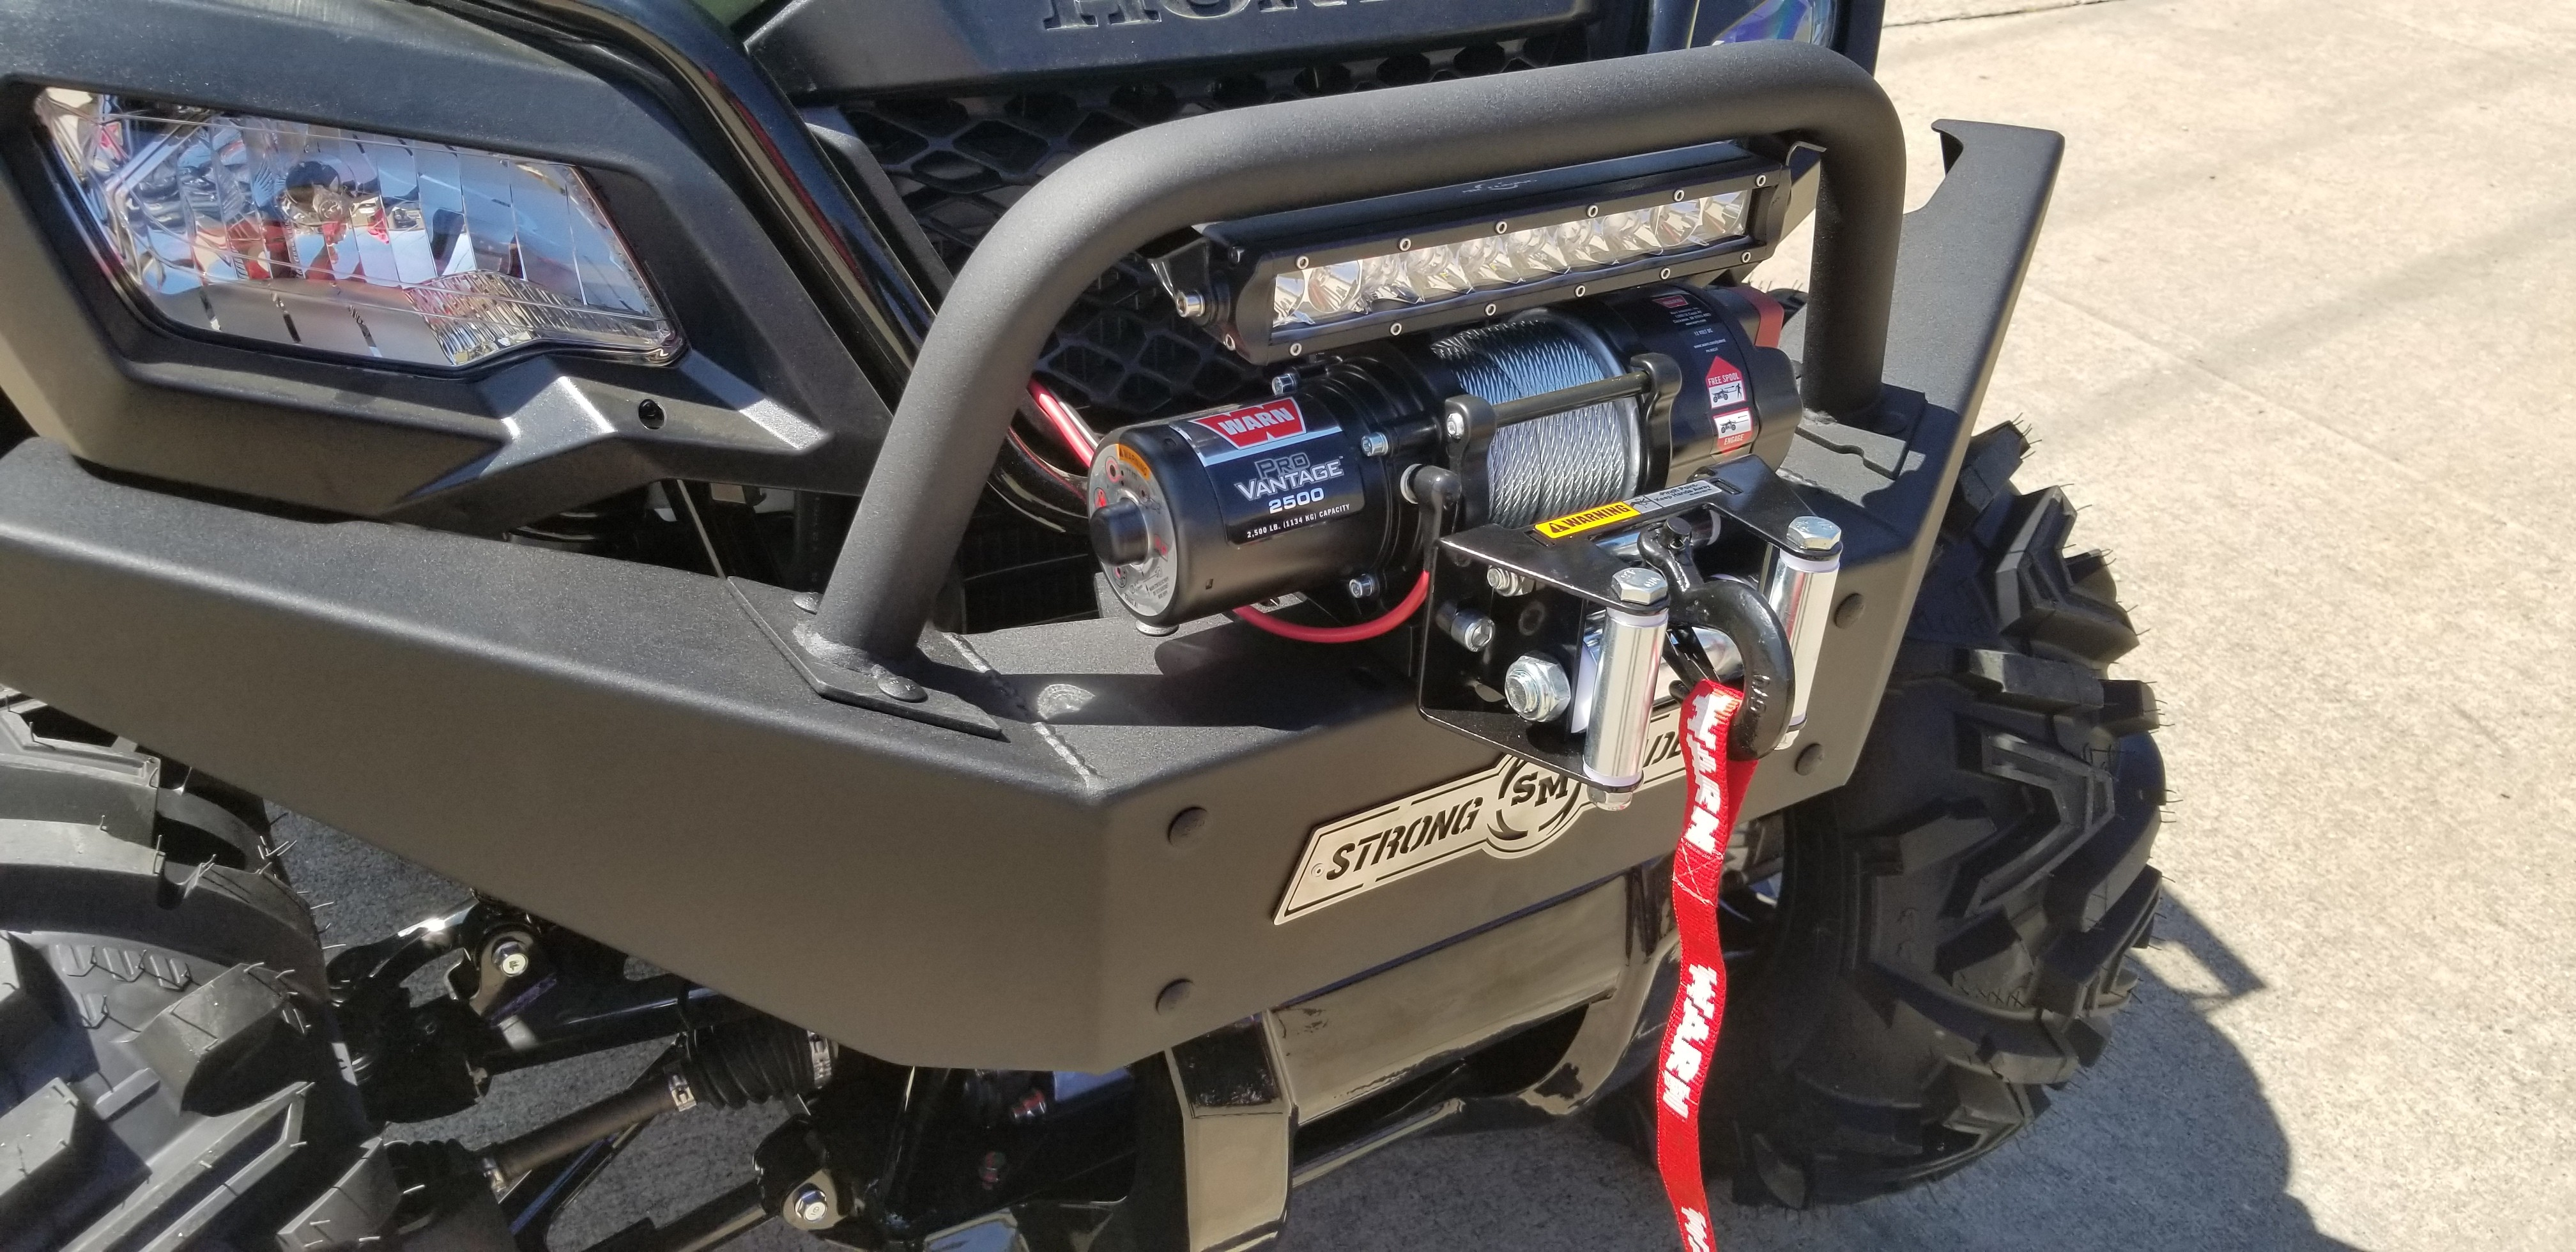 New and Used Motorsport Vehicles for Sale | ATVs